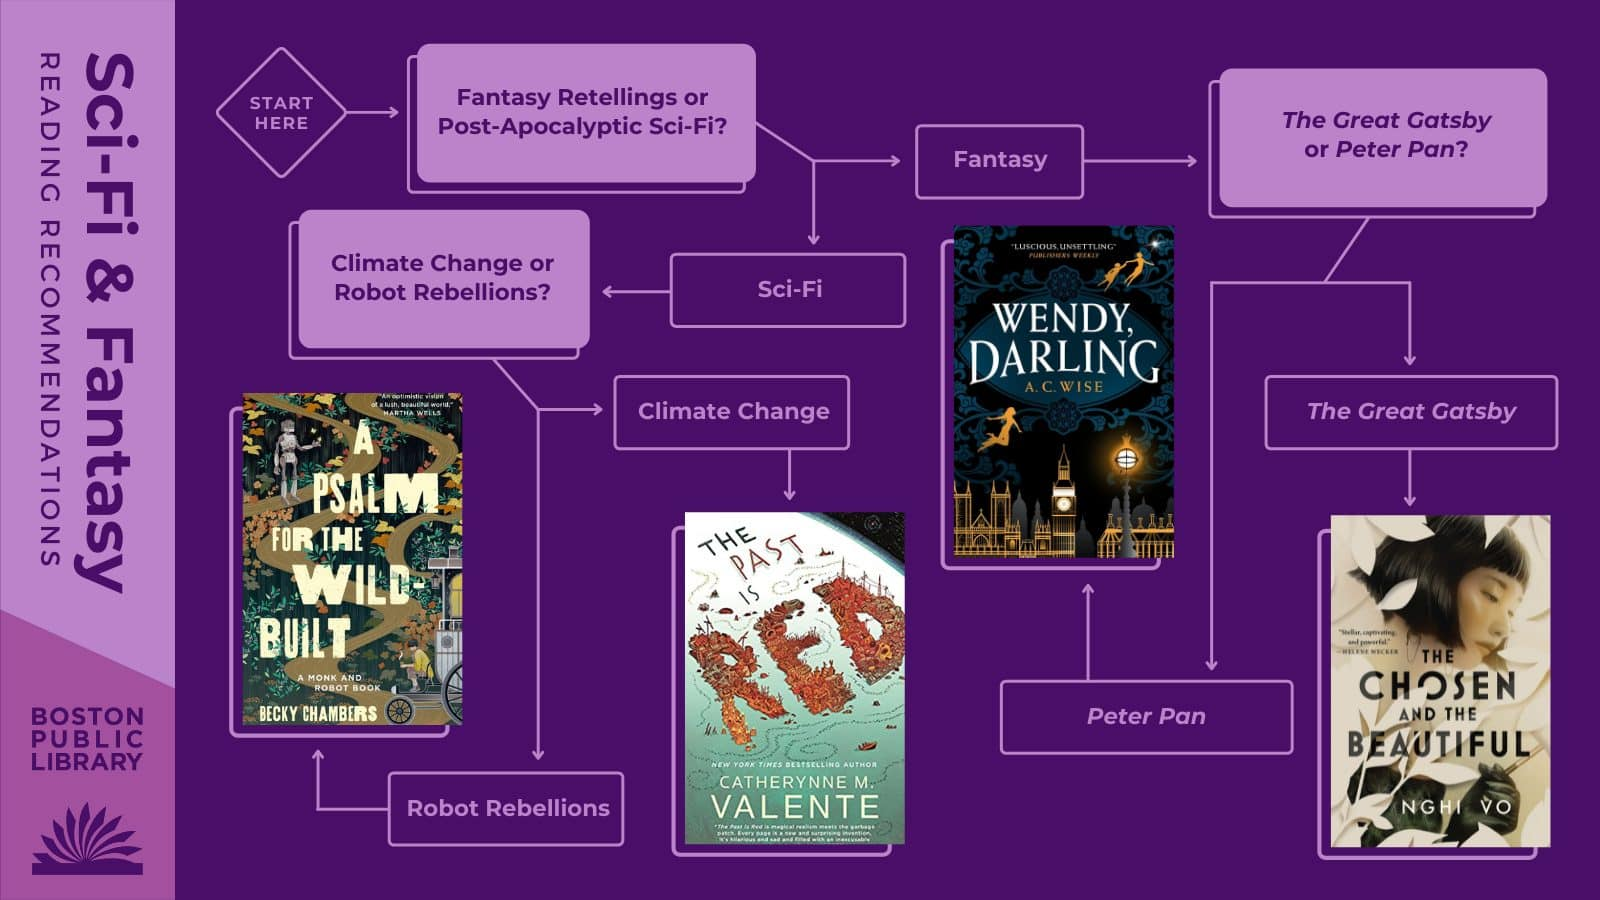 Q1:Fantasy retellings or post-apocalyptic sci-fi? | Fantasy Retellings ---> Q2: The Great Gatsby or Peter Pan? | The Great Gatsby:The Chosen and the Beautifulby Nghi Vo| Peter Pan:Wendy, Darlingby A.C. Wise | Post-apocalyptic sci-fi ---> Q3: Climate change or robot rebellions? | Climate Change:The Past Is Redby Catherynne M. Valente | Robot Rebellions:A Psalm for the Wild-Builtby Becky Chambers.